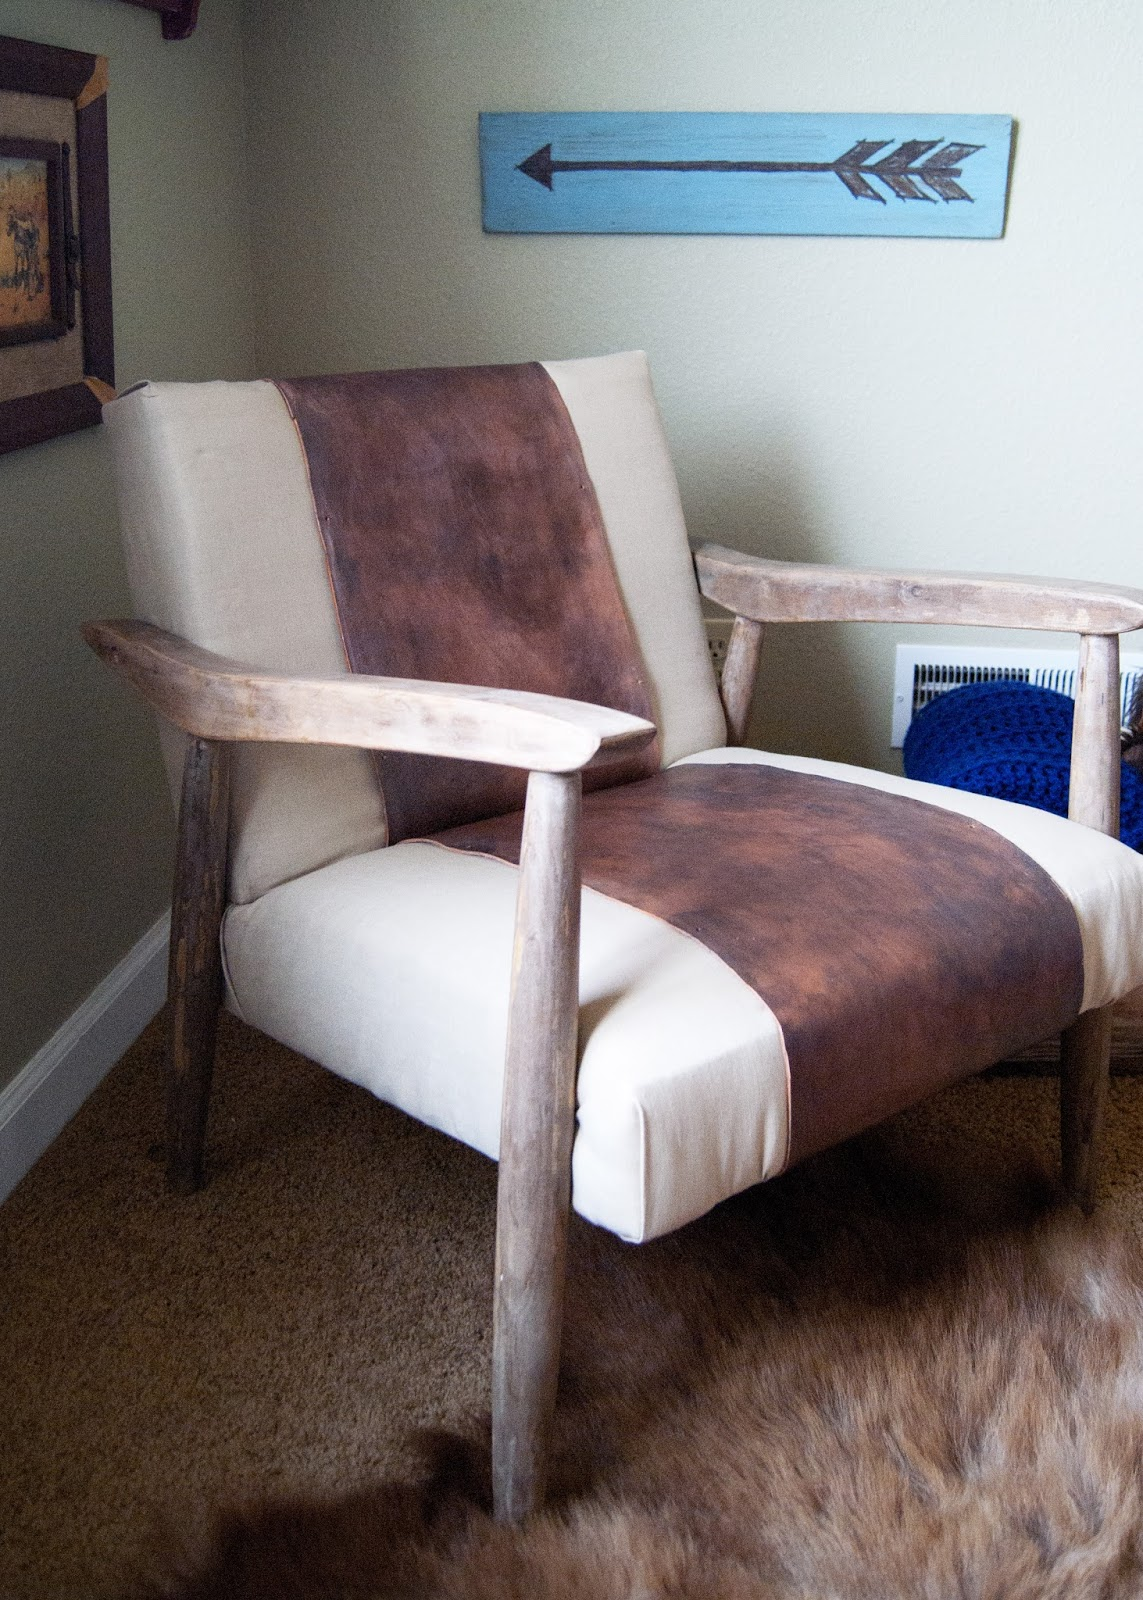 Mid century chair gets a makeover with linen and leather. Arrow sign in background is awesome!